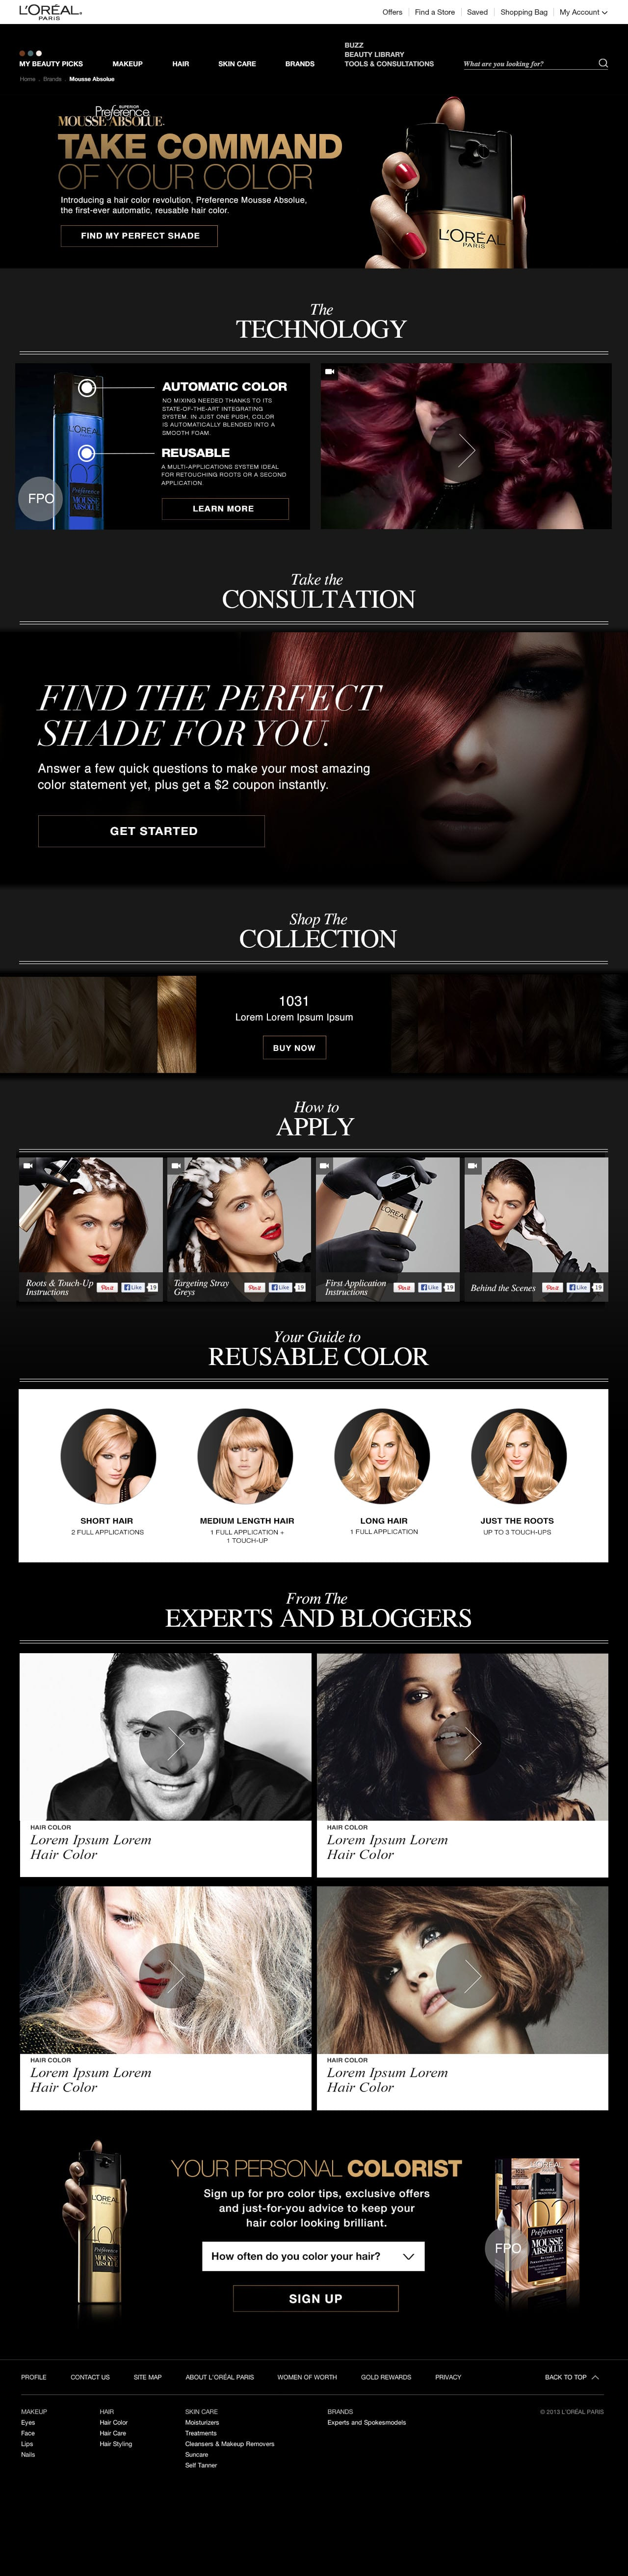 L'Oreal Mousse Absolue Website